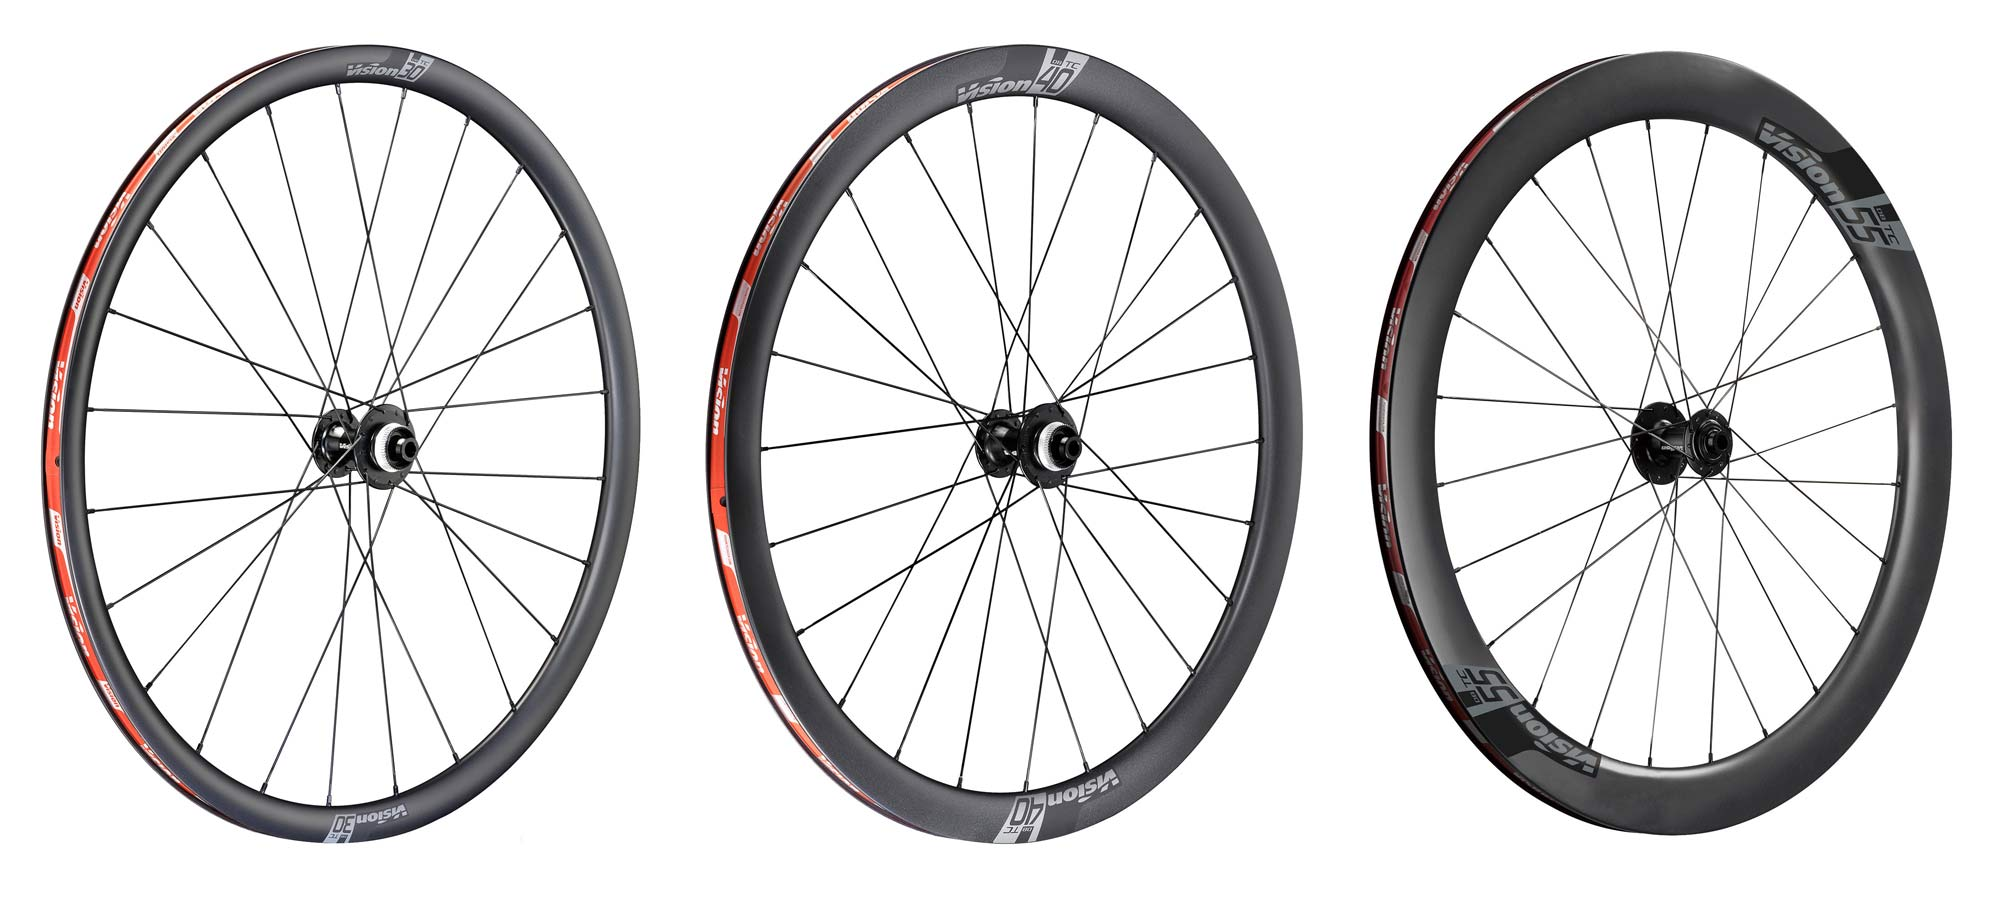 Vision TriMax Carbon 30mm 40mm 55mm deep tubeless Disc wheels